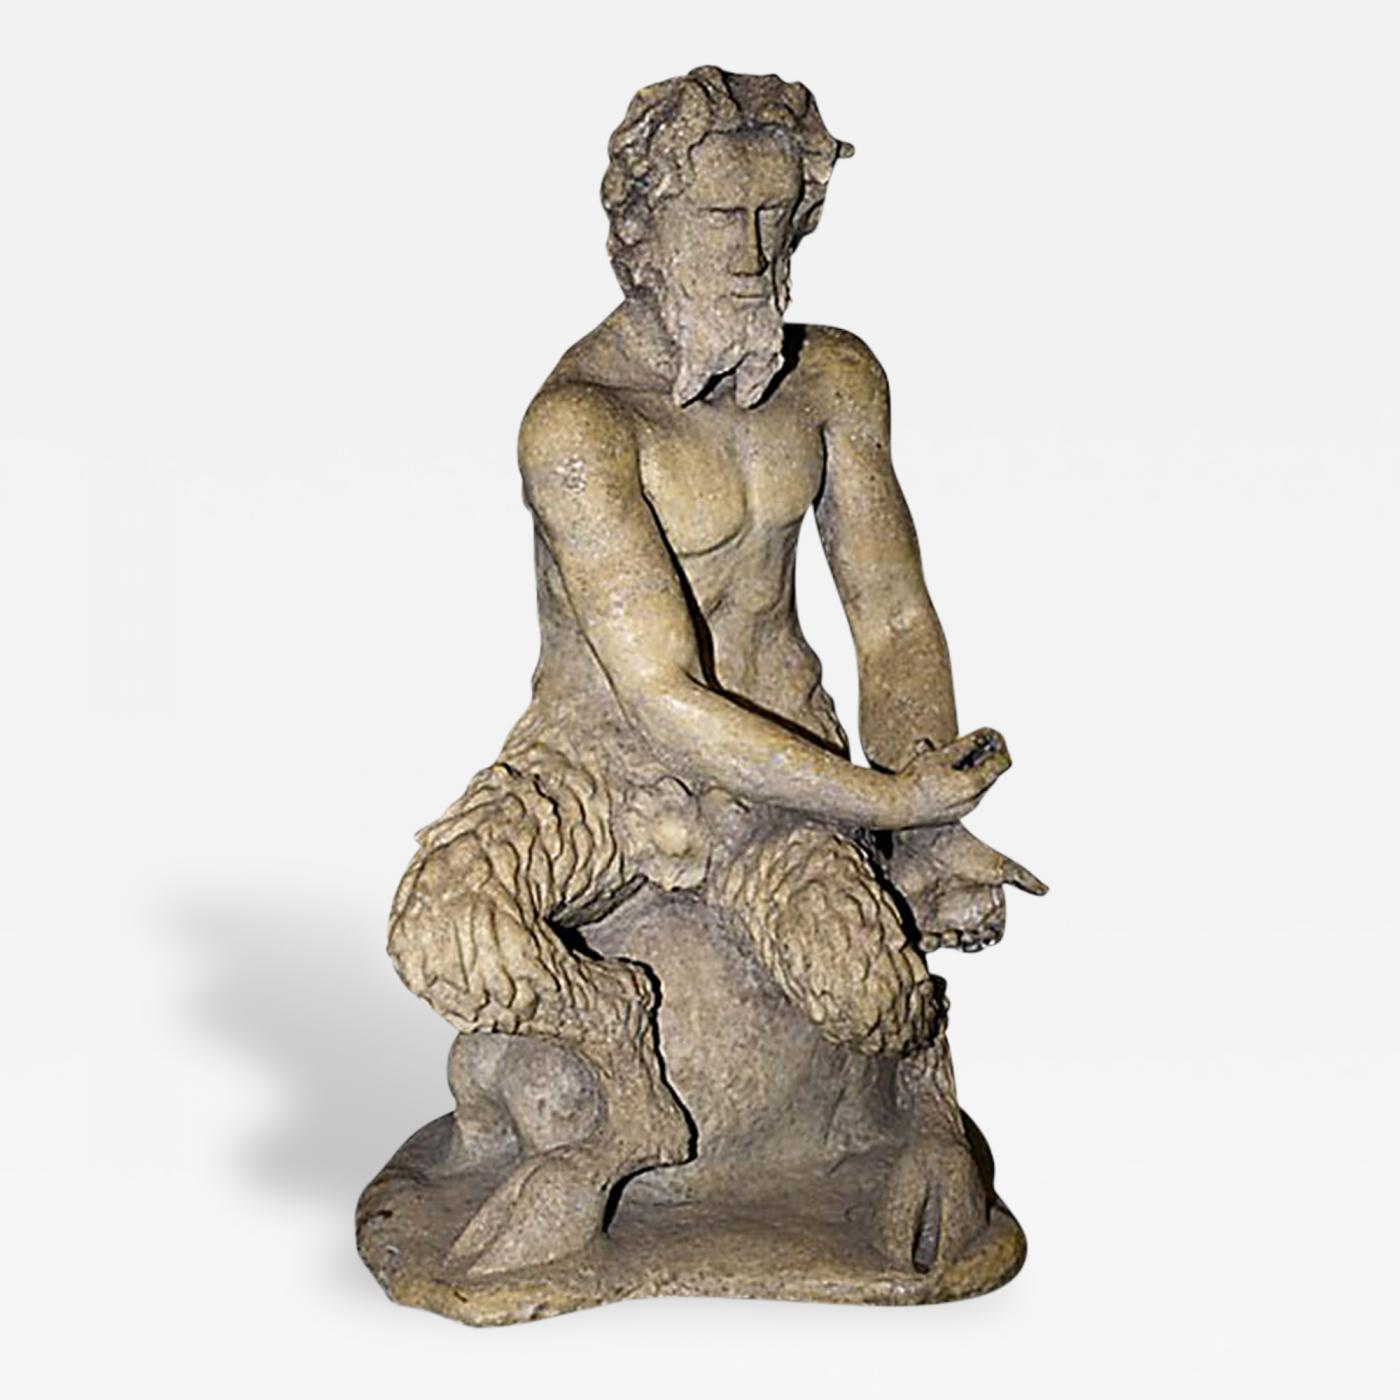 Listings / Decorative Arts / Garden U0026 Architectural / Statues